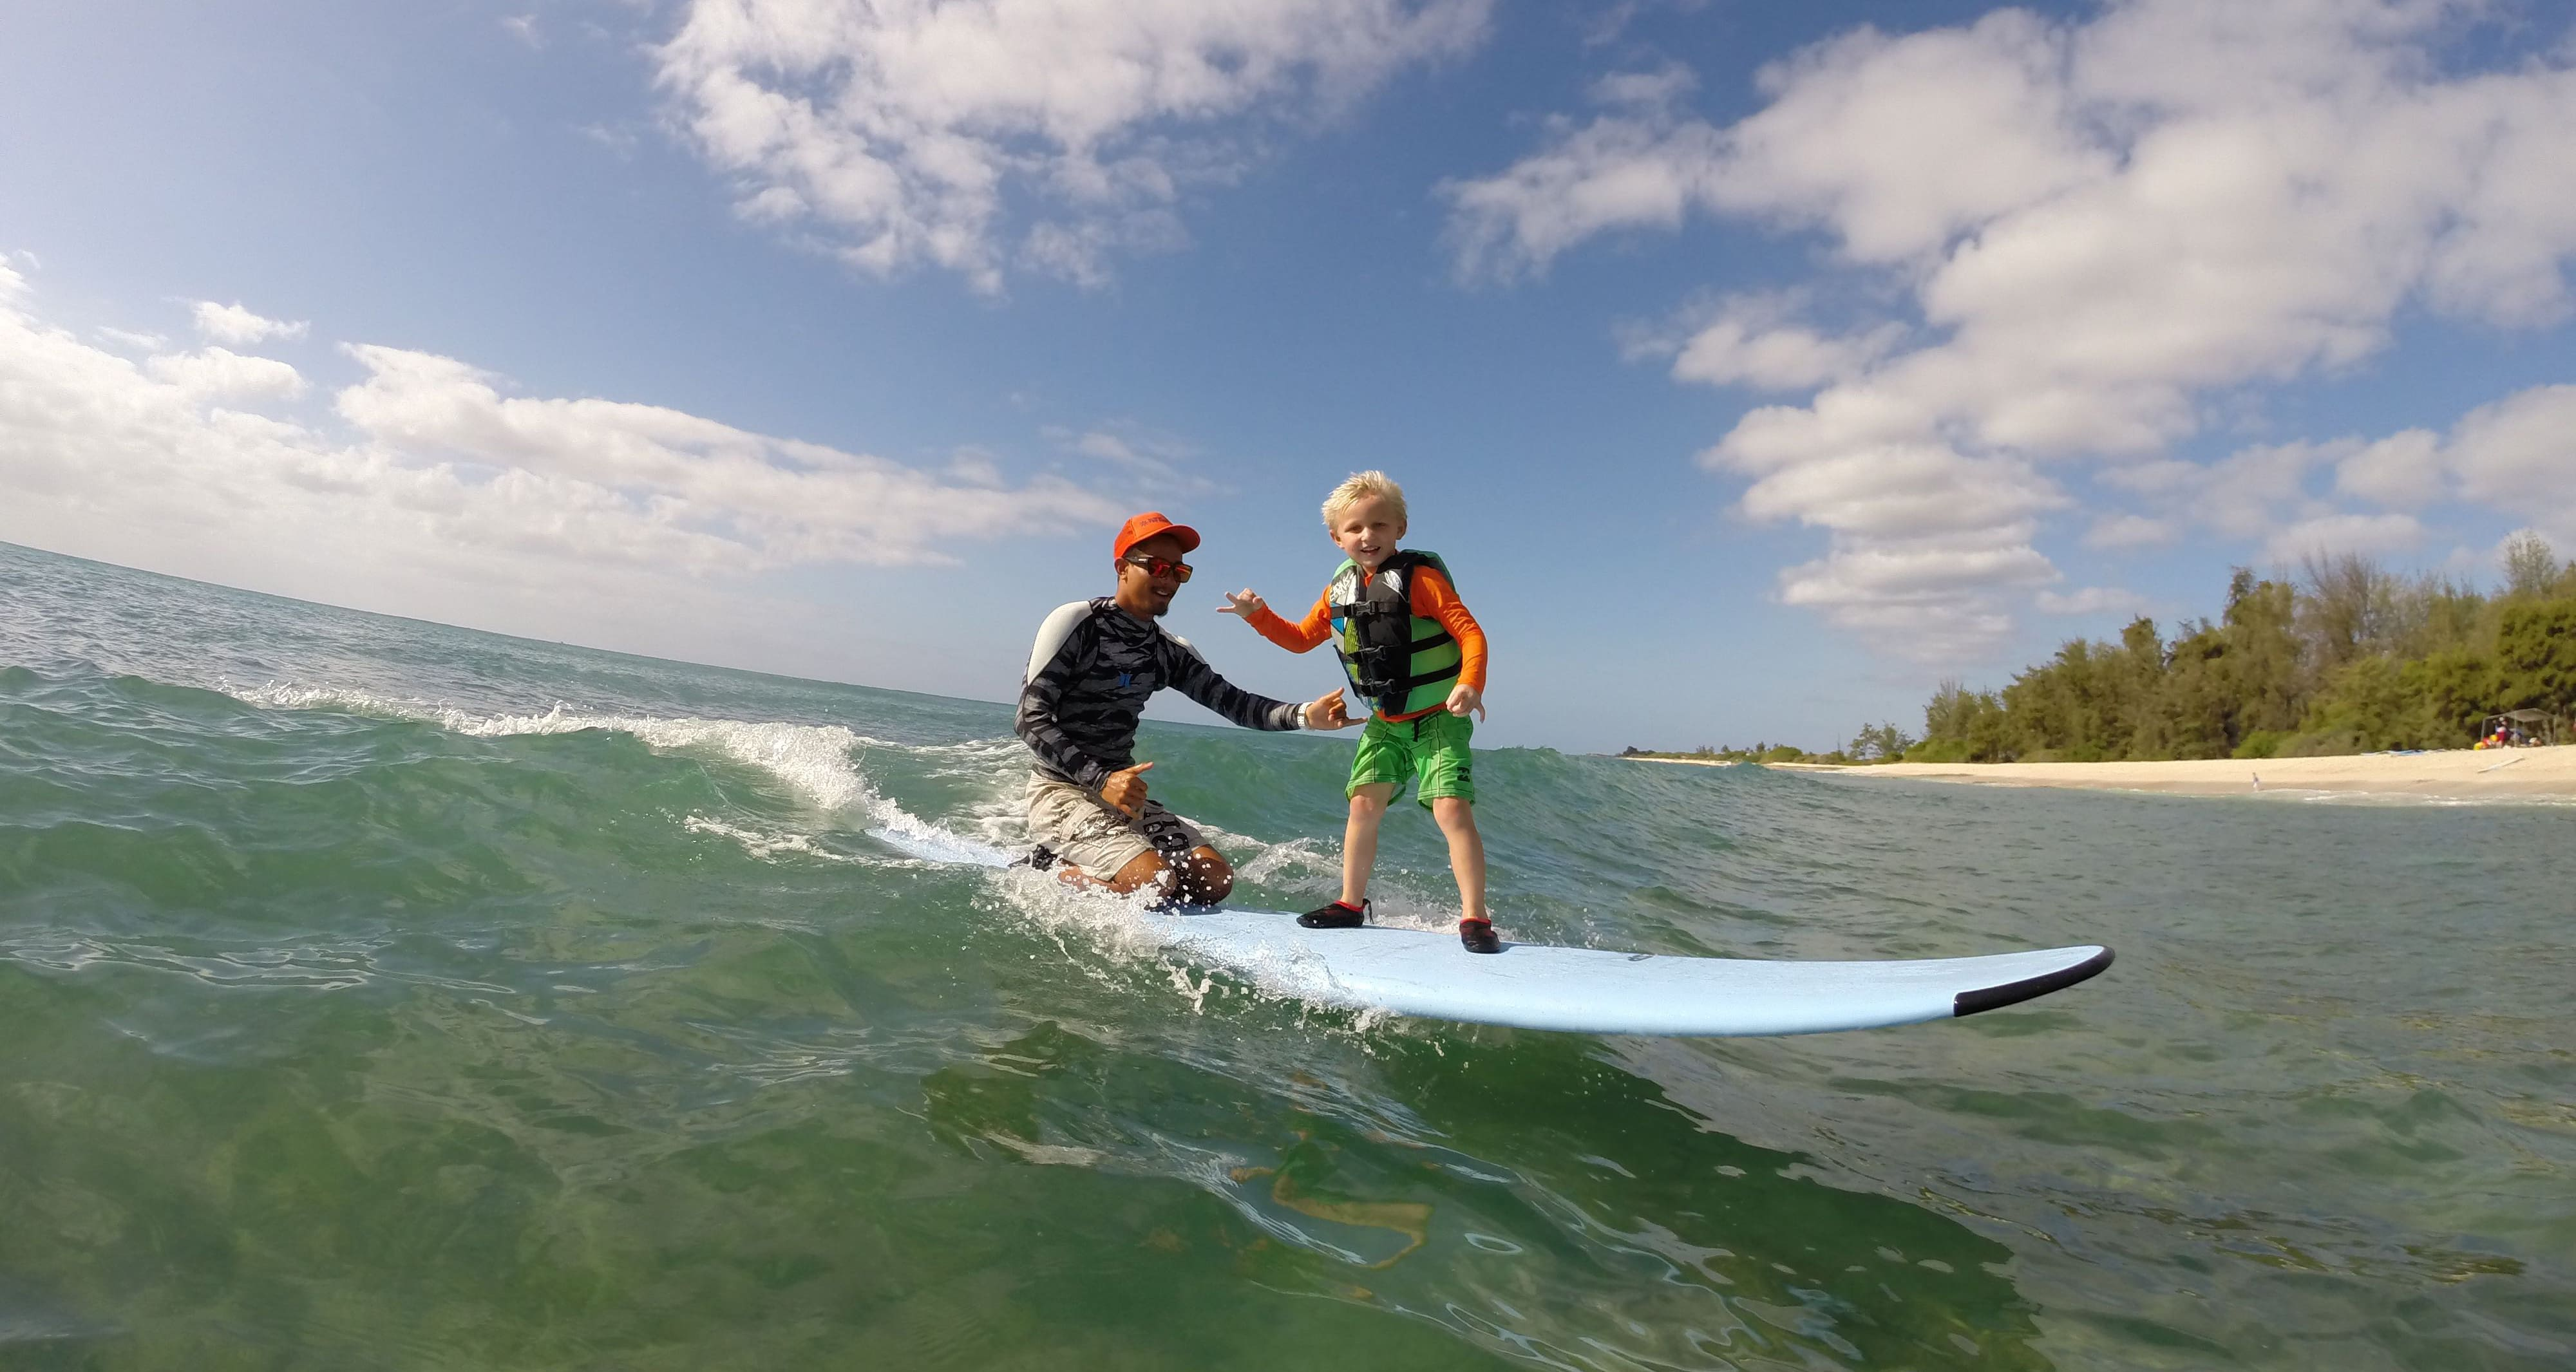 A young boy stands and an instructor kneels on a surfboard atop a breaking wave